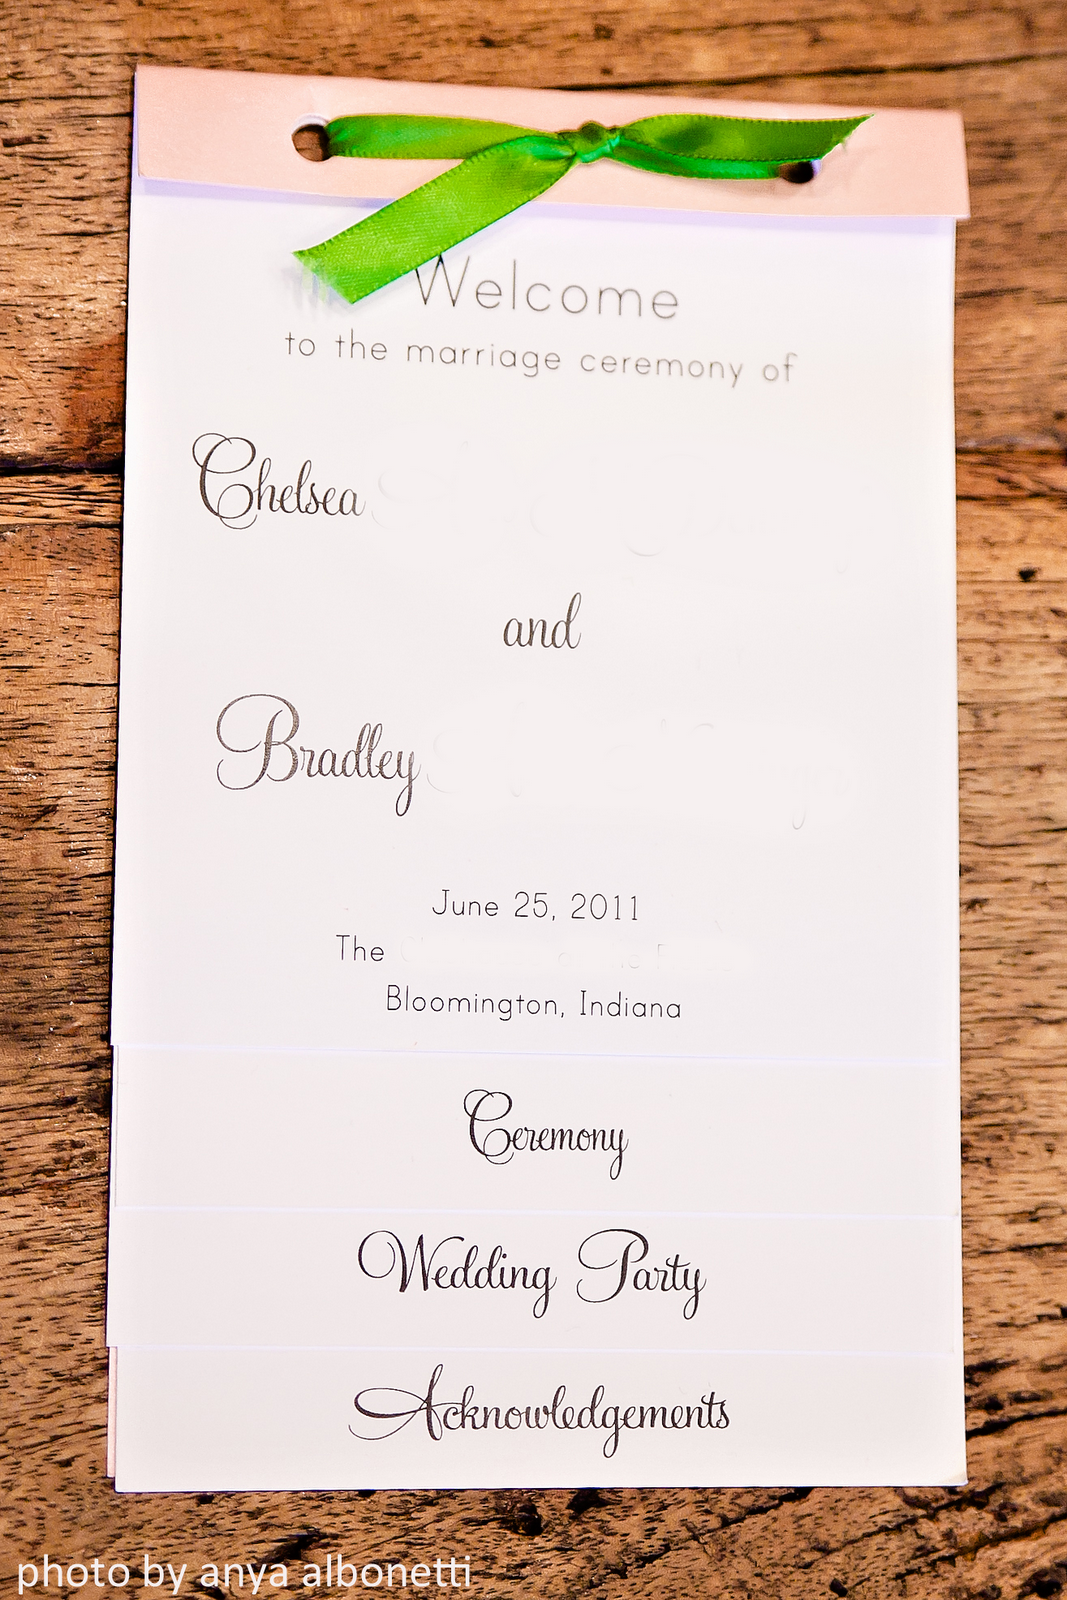 Our Wedding: The Details